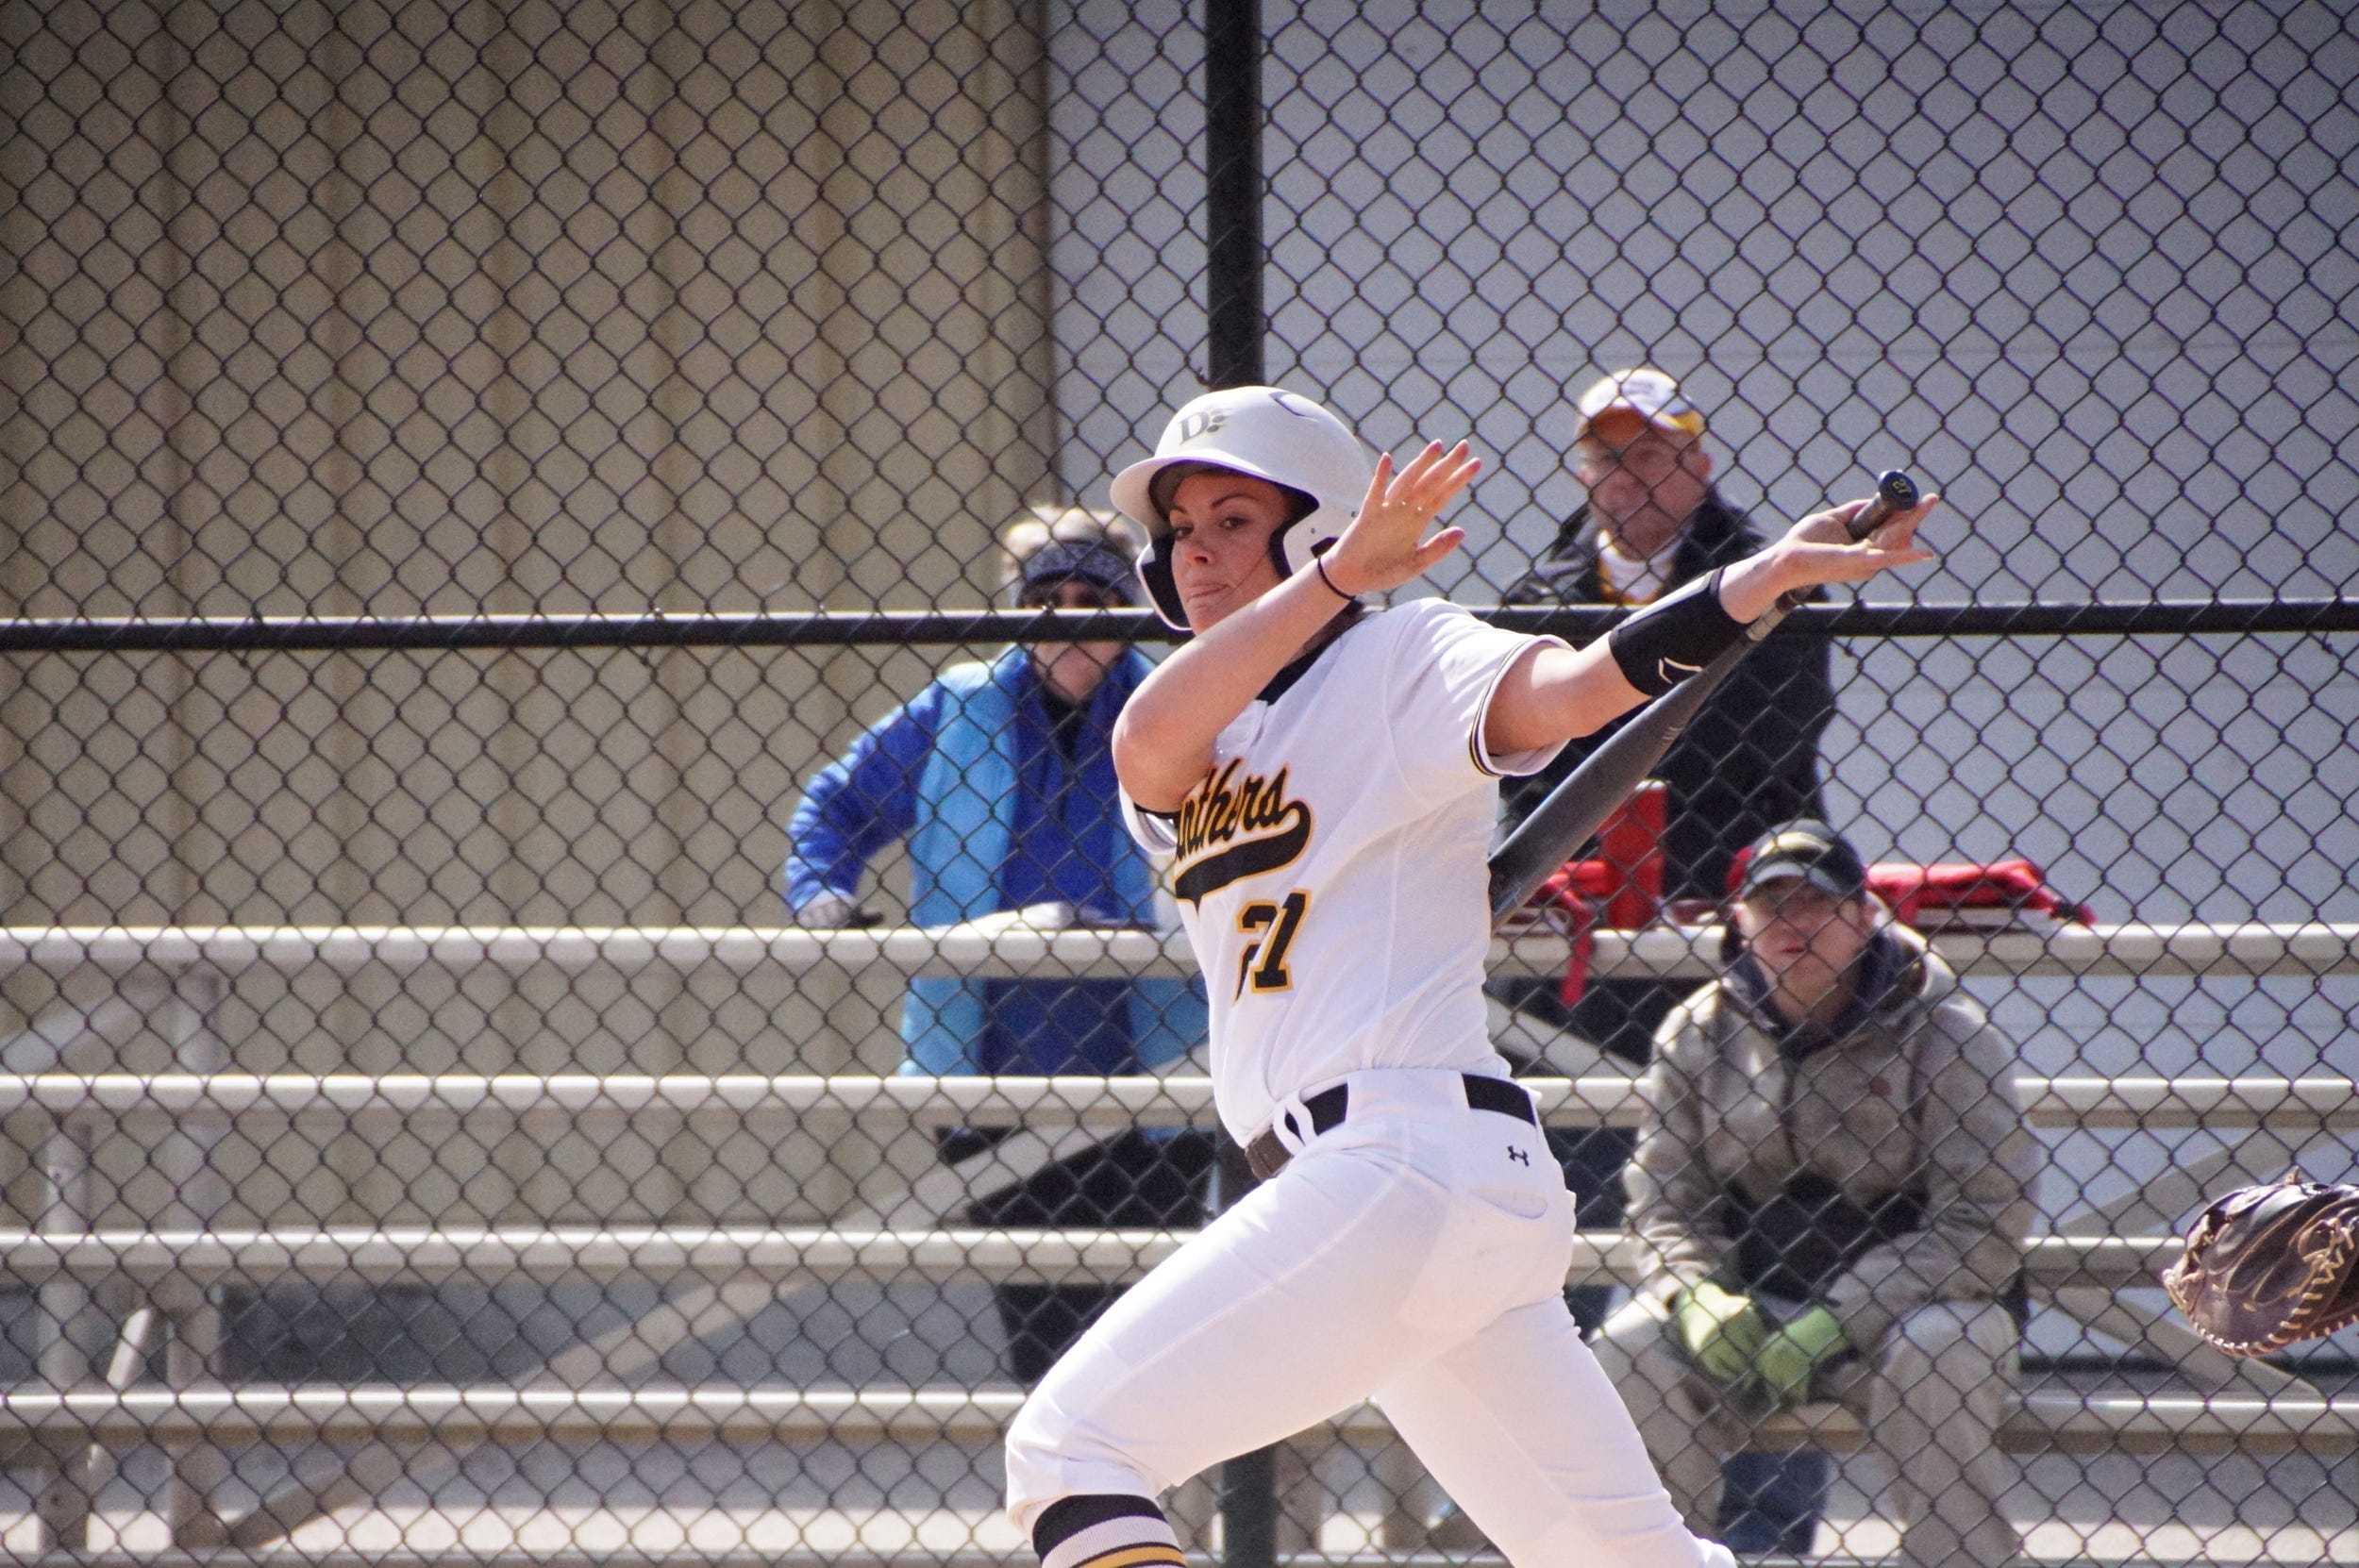 Former Liberty Union standout and senior catcher for Ohio Dominican University is having the best season of her career and leads the Panthers with a .359 batting average.